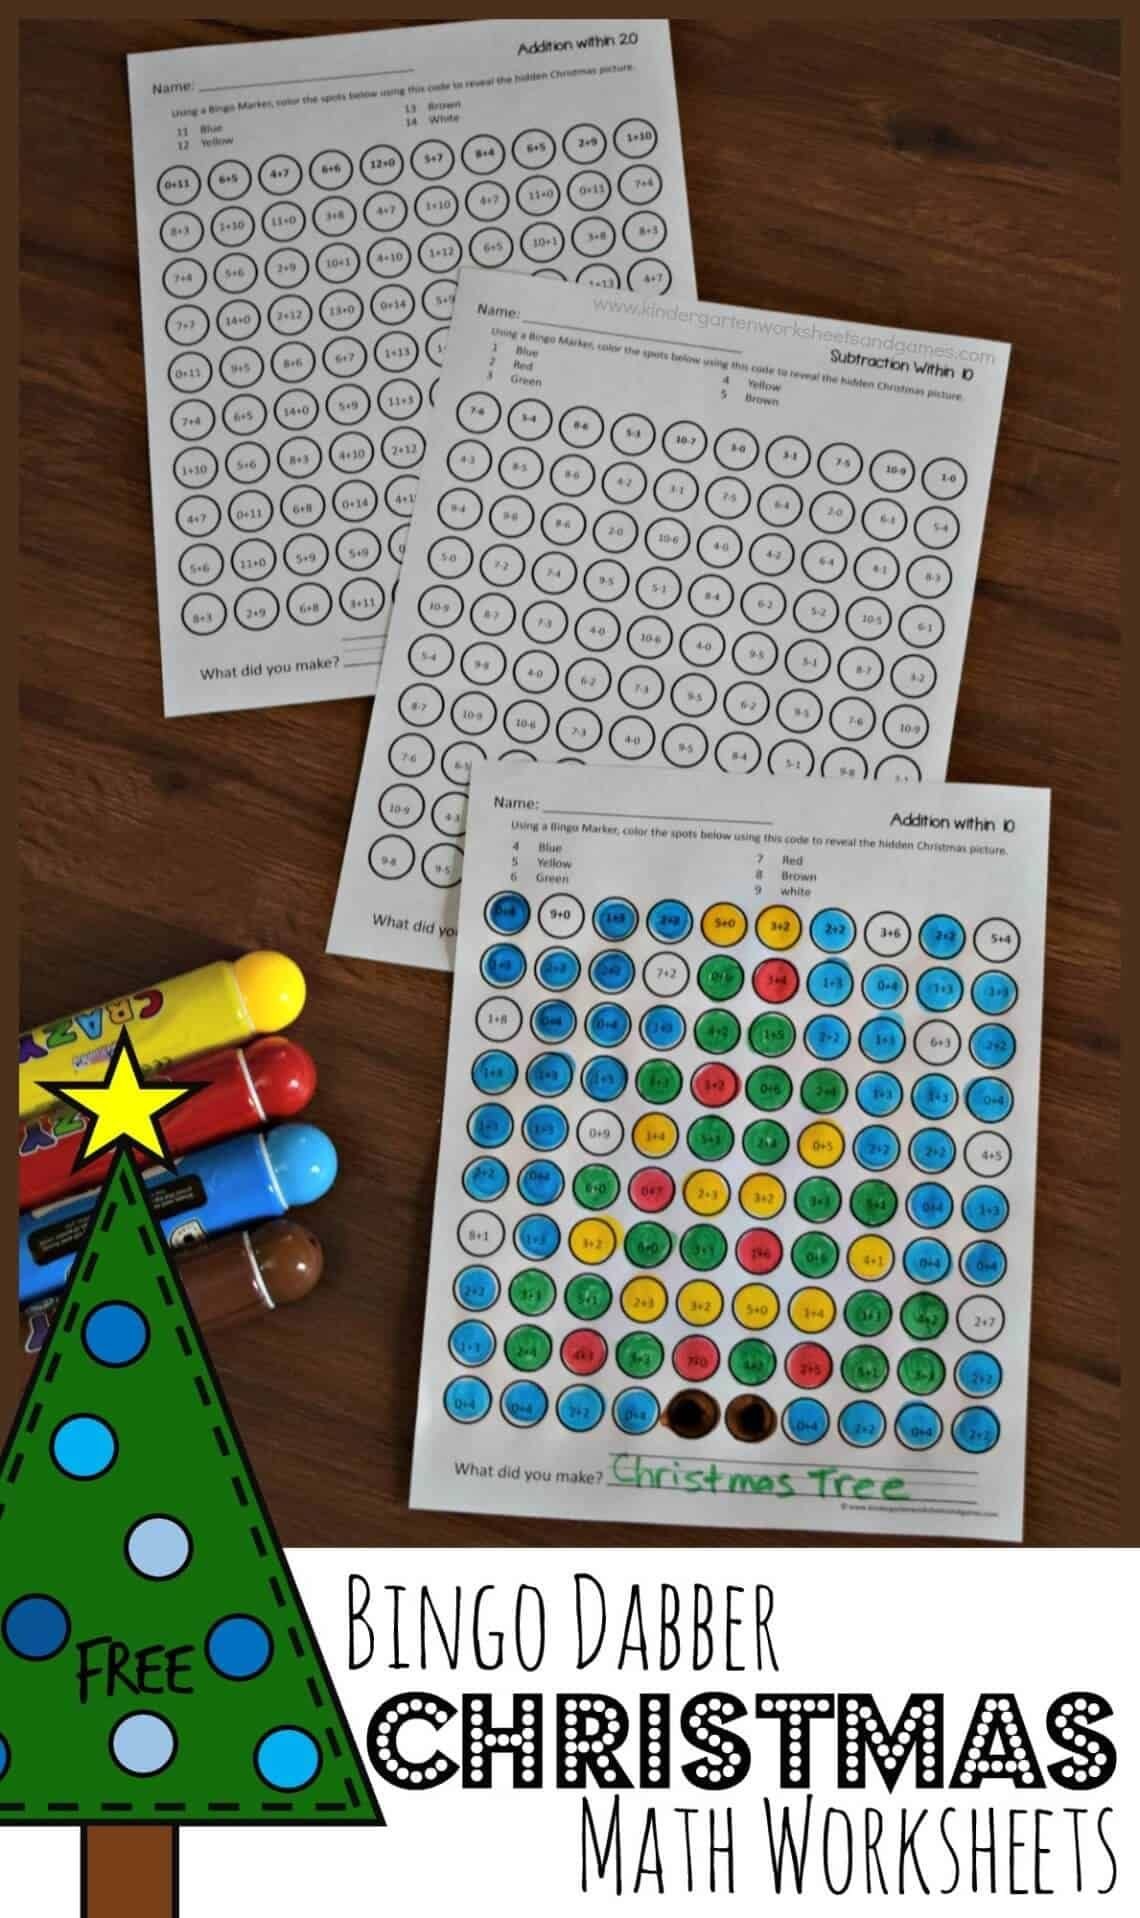 Free Bingo Dabber Christmas Math Worksheets